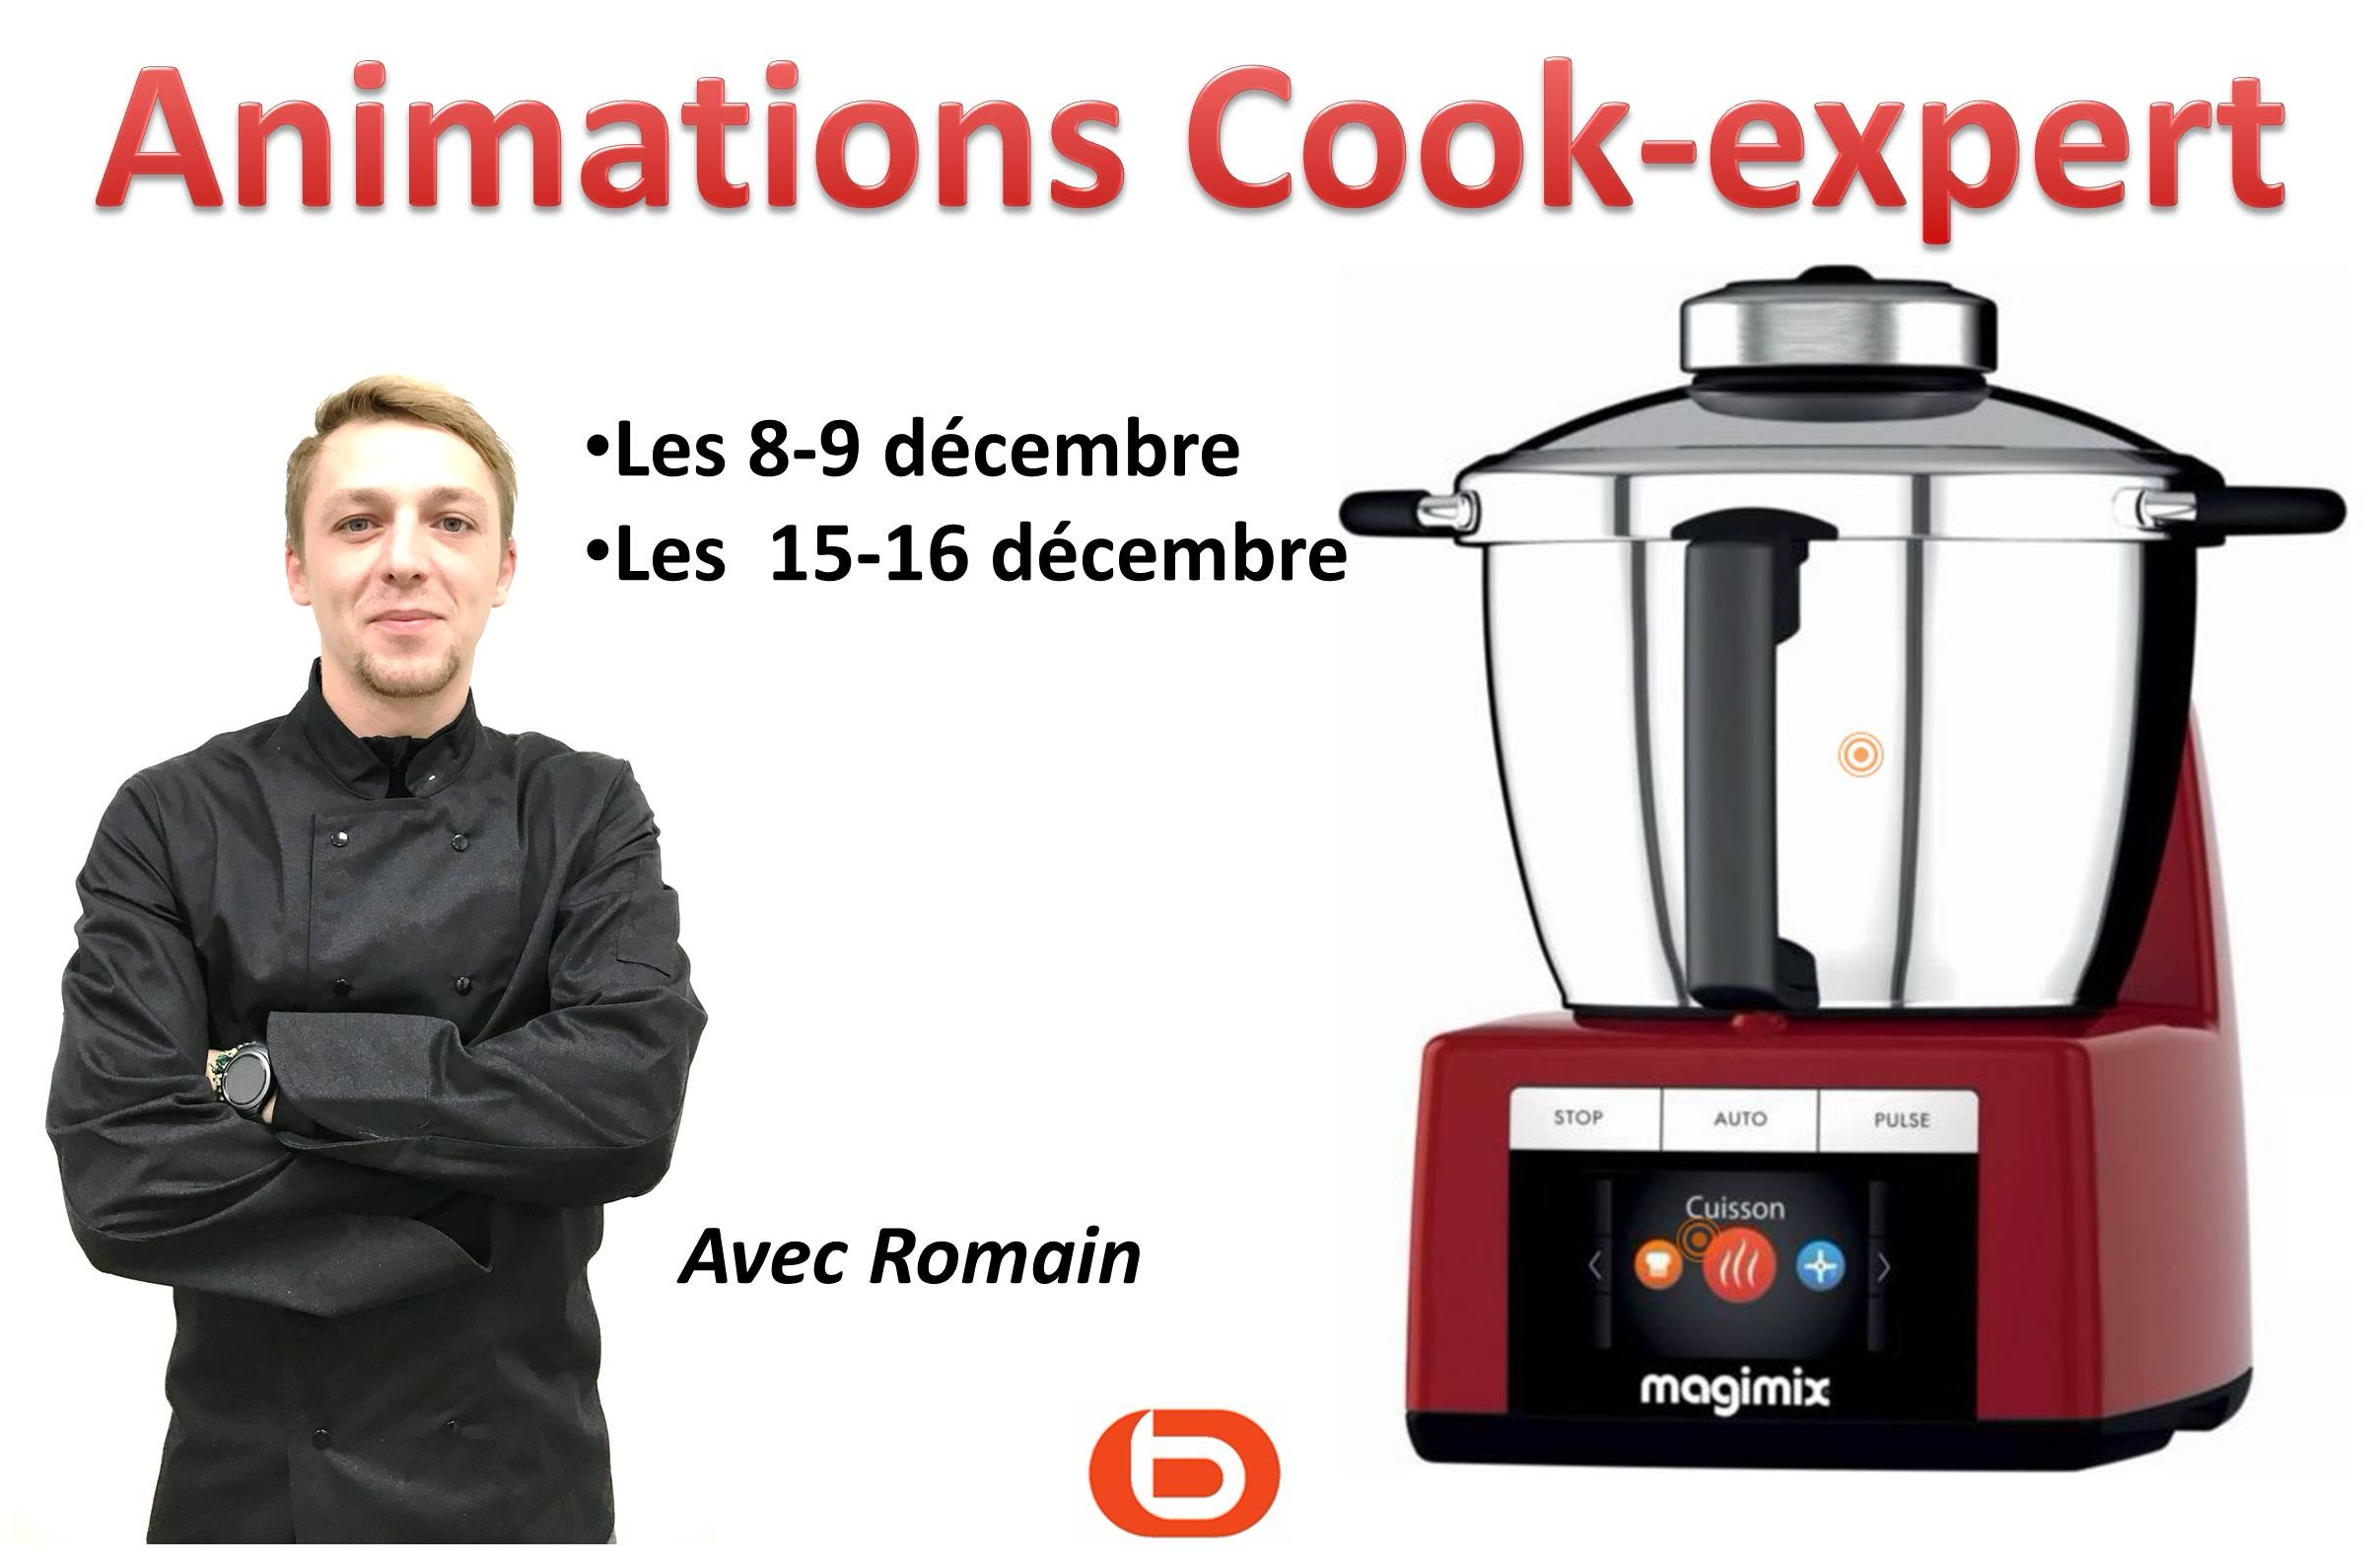 Animations culinaires avec notre chef Romain